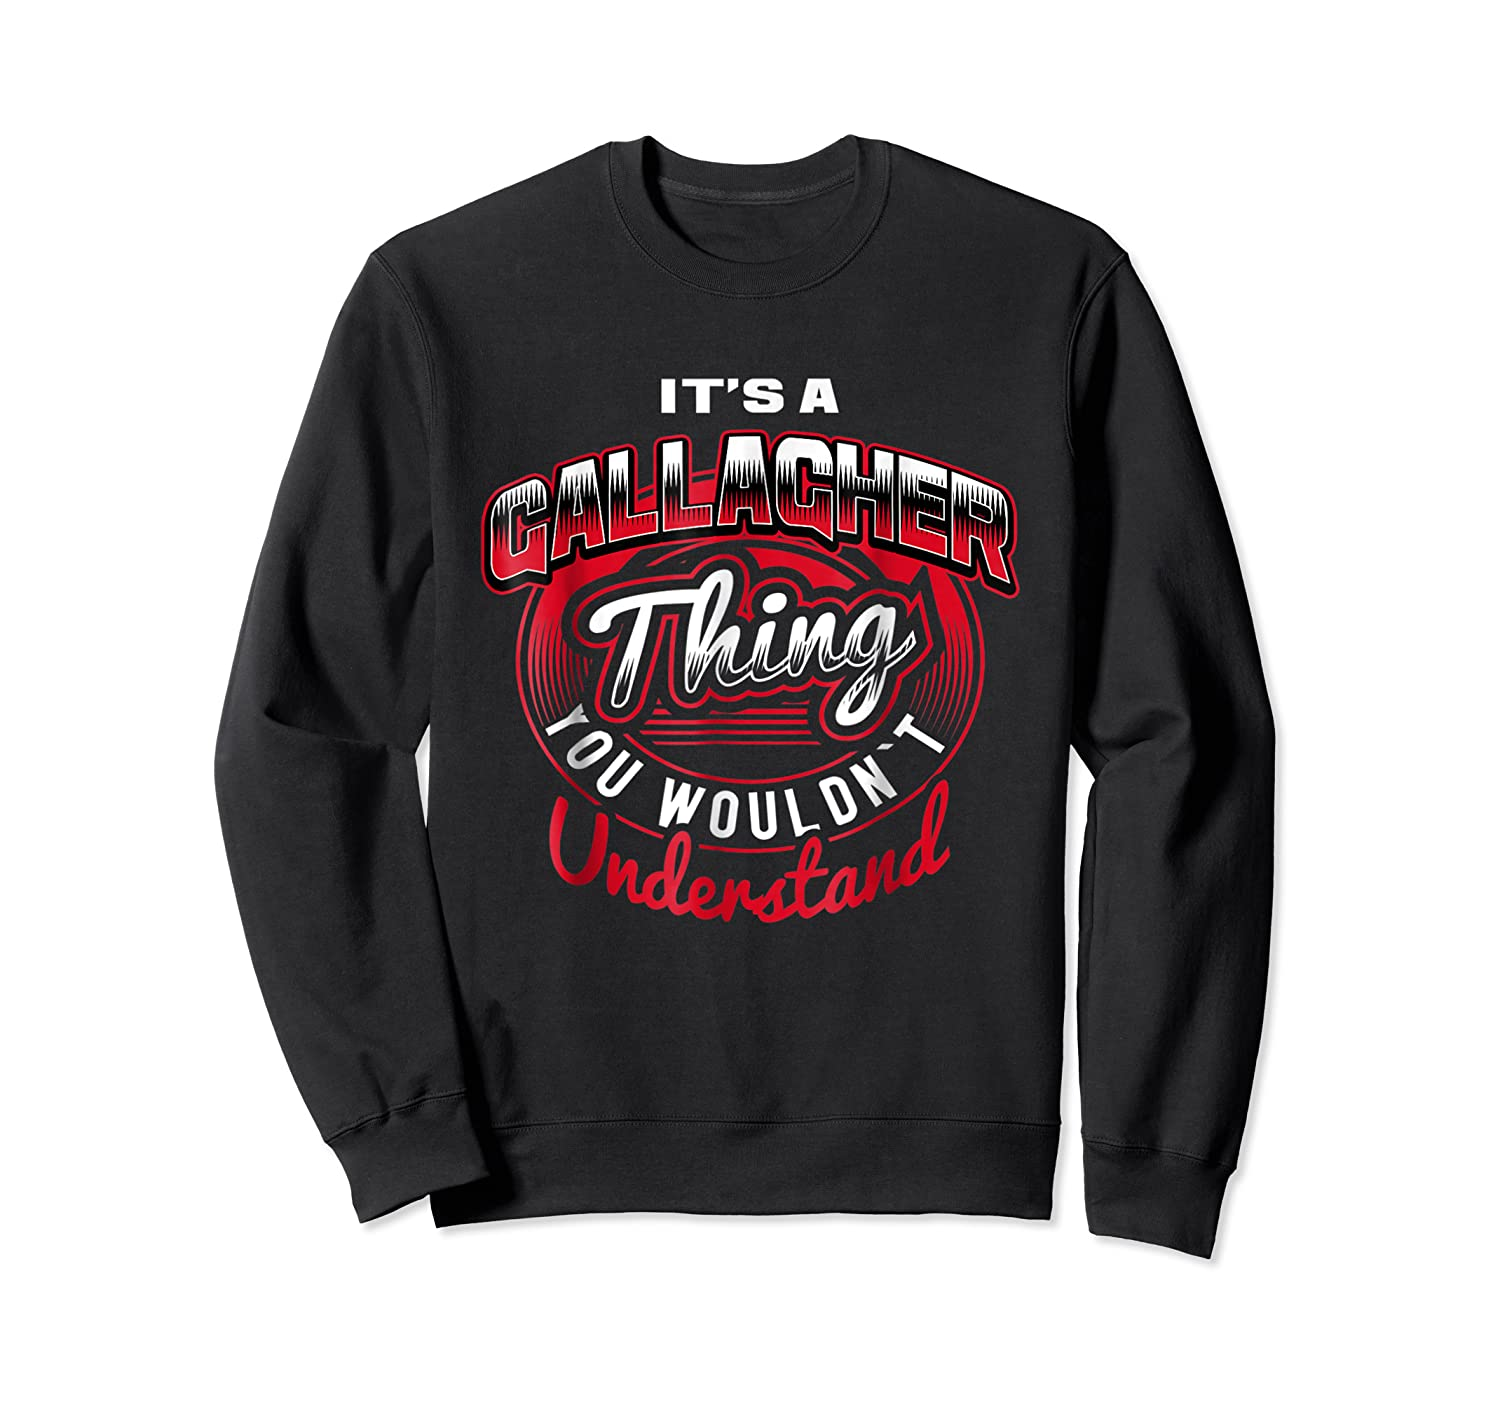 Gallagher Name T Shirts It S A Gallagher Thing Crewneck Sweater